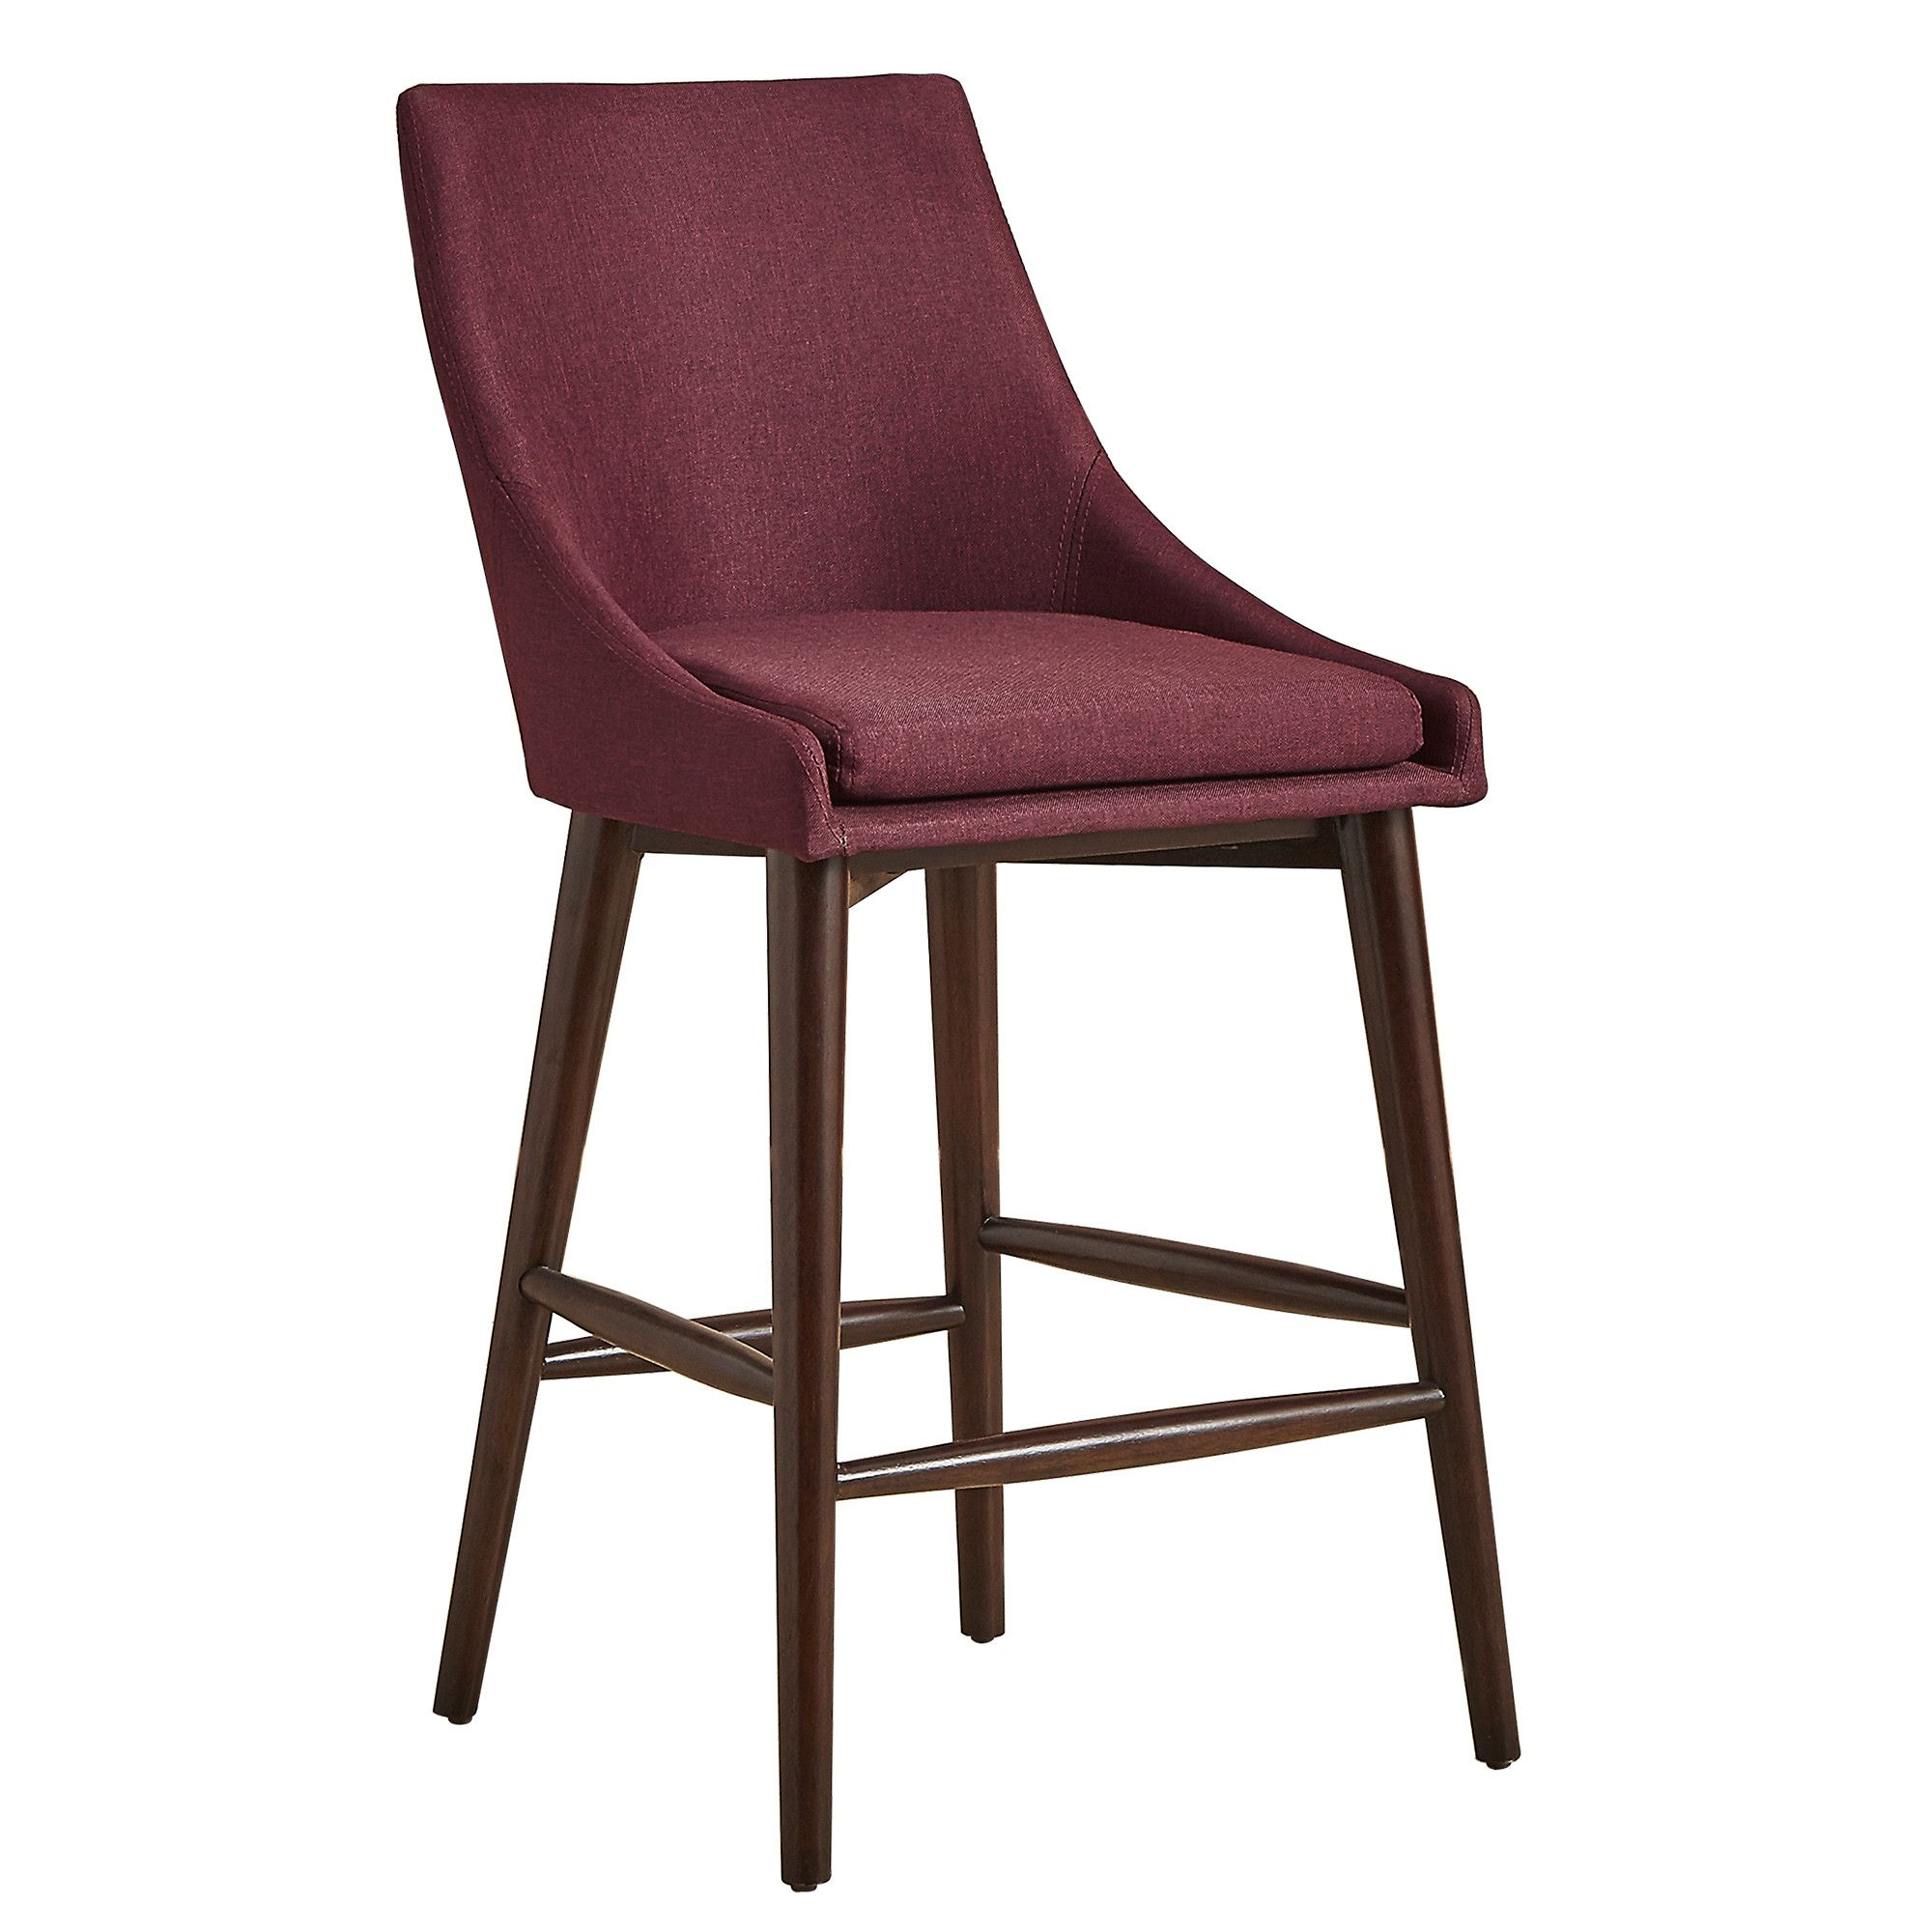 Counter Height Arm Chairs Horse Saddle Dental Chair Blaisdell Products Pinterest Bar